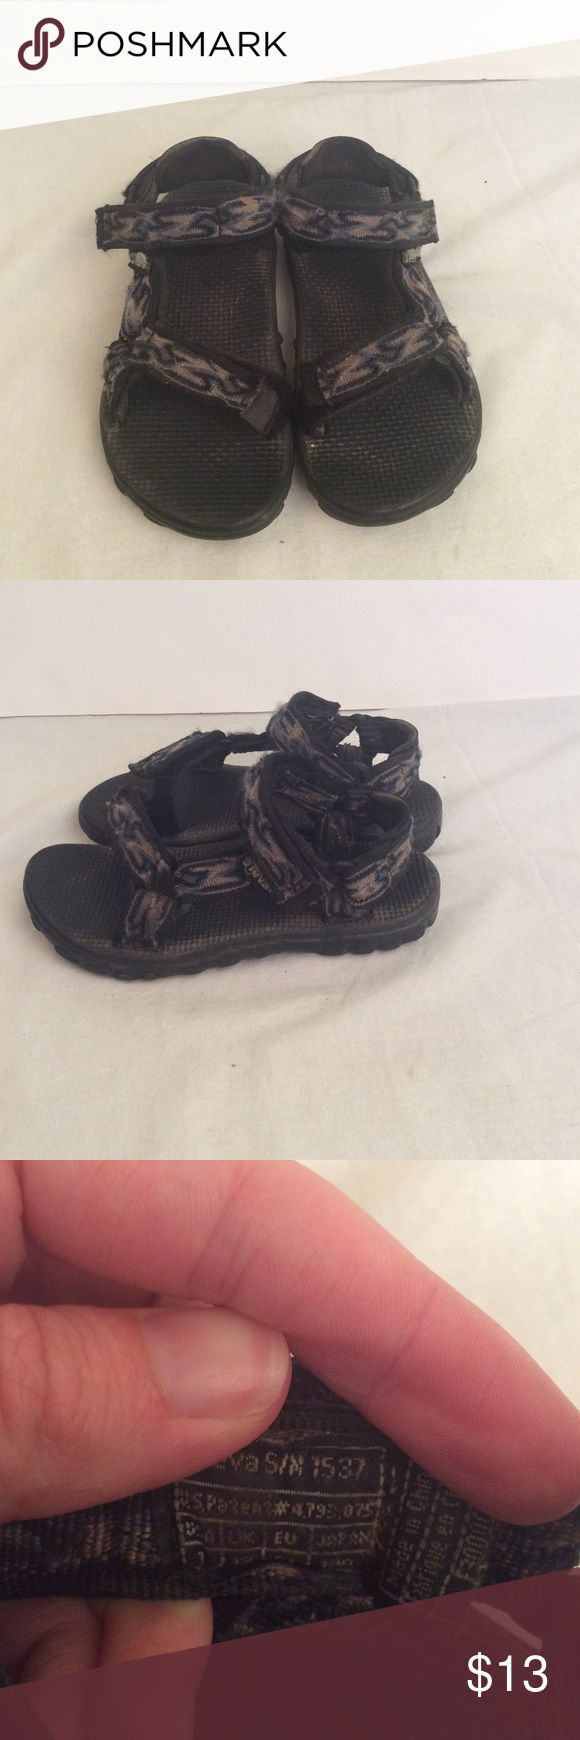 ❄️2 For $6❄️Kids Teva Sandals Kids size 1 Teva Sandals, in good condition, comes from a smoke free home, blue and gray in color. Teva Shoes Sandals & Flip Flops